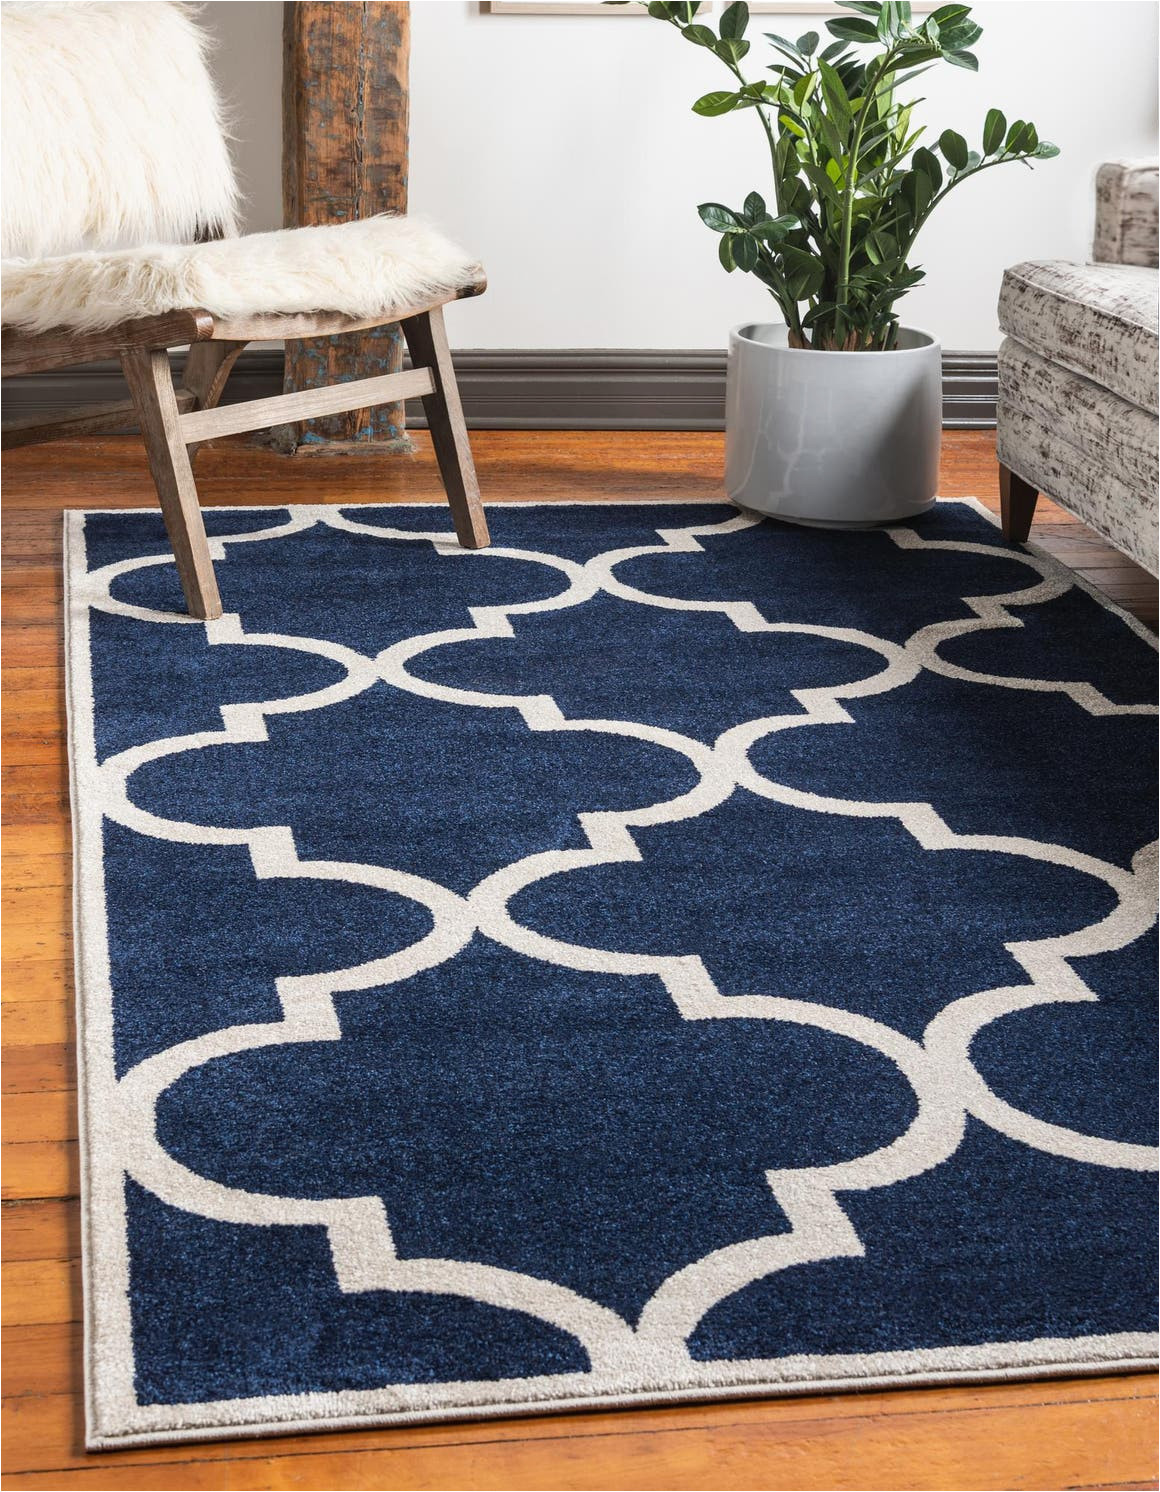 navy blue 5x8 trellis area rug 33116771